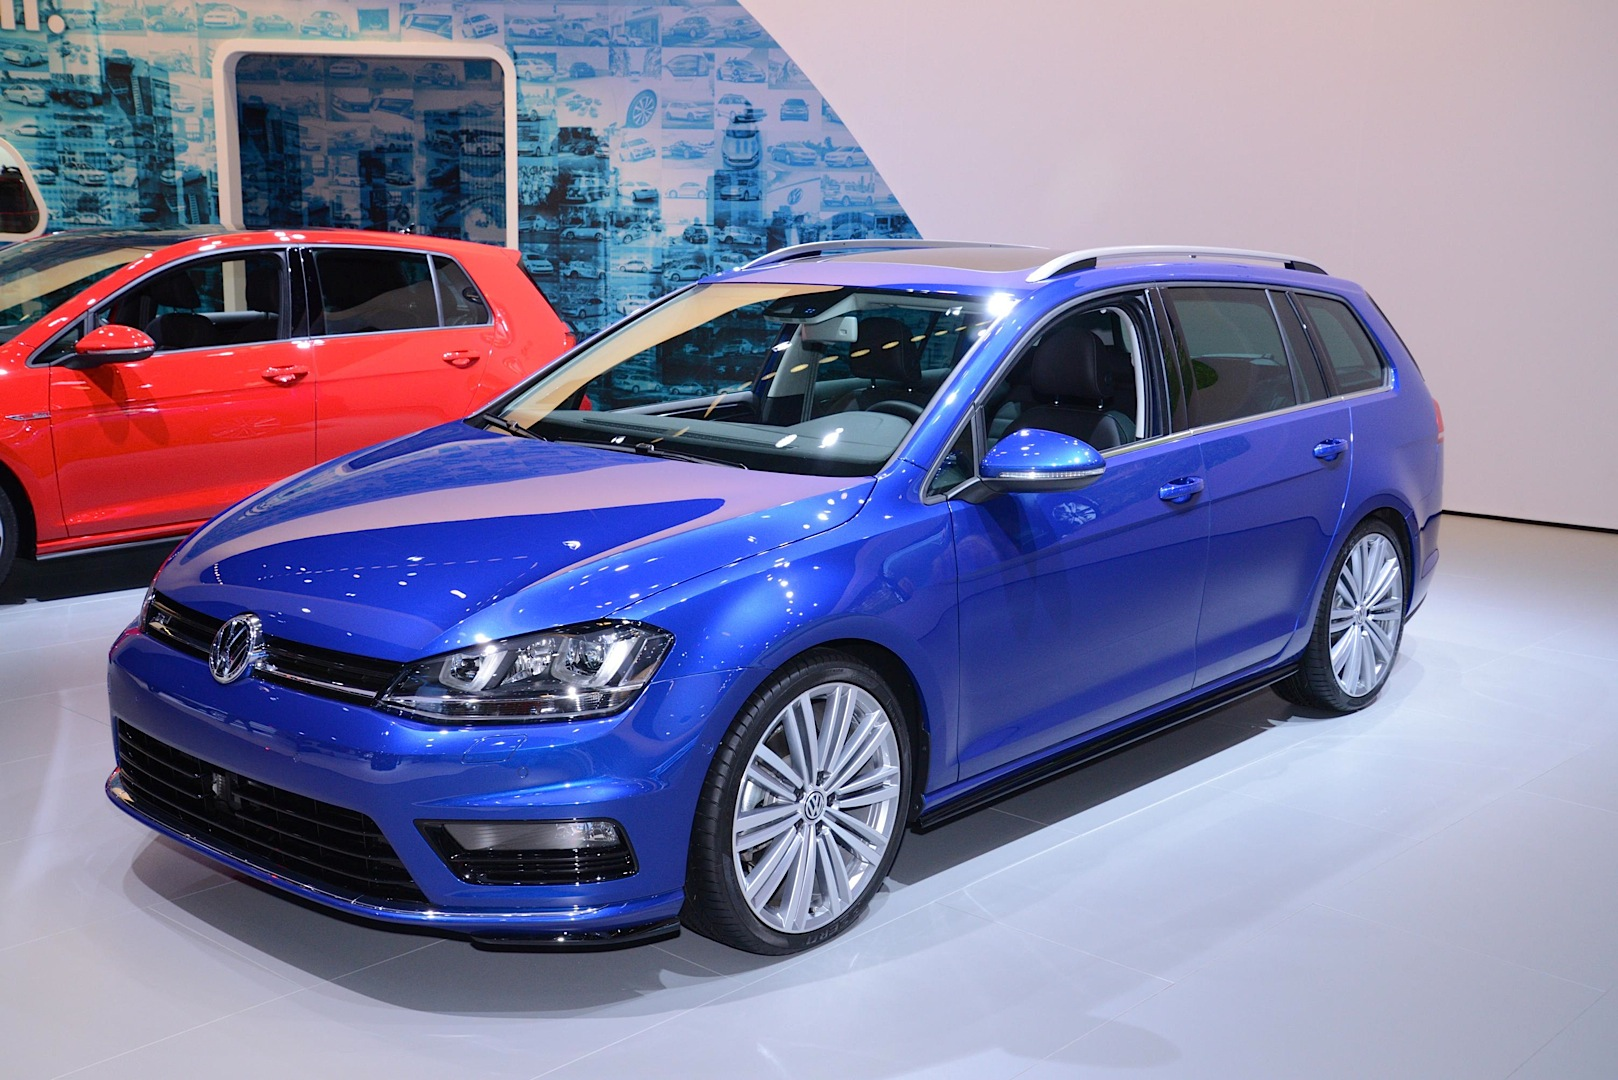 2019 Volkswagen Golf R32 photo - 3